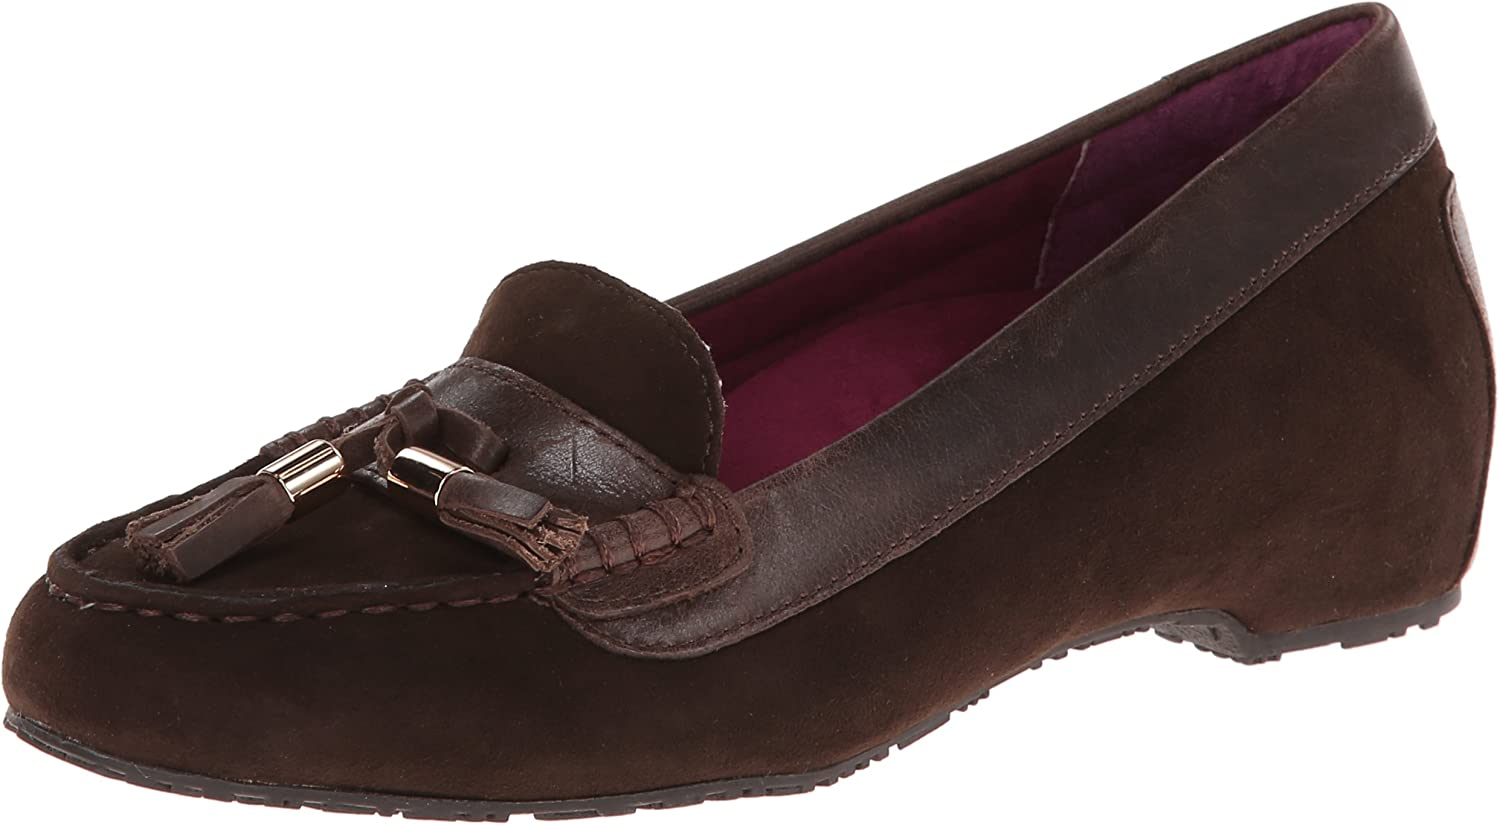 Vionic Weil Florence Flats by Orthaheel